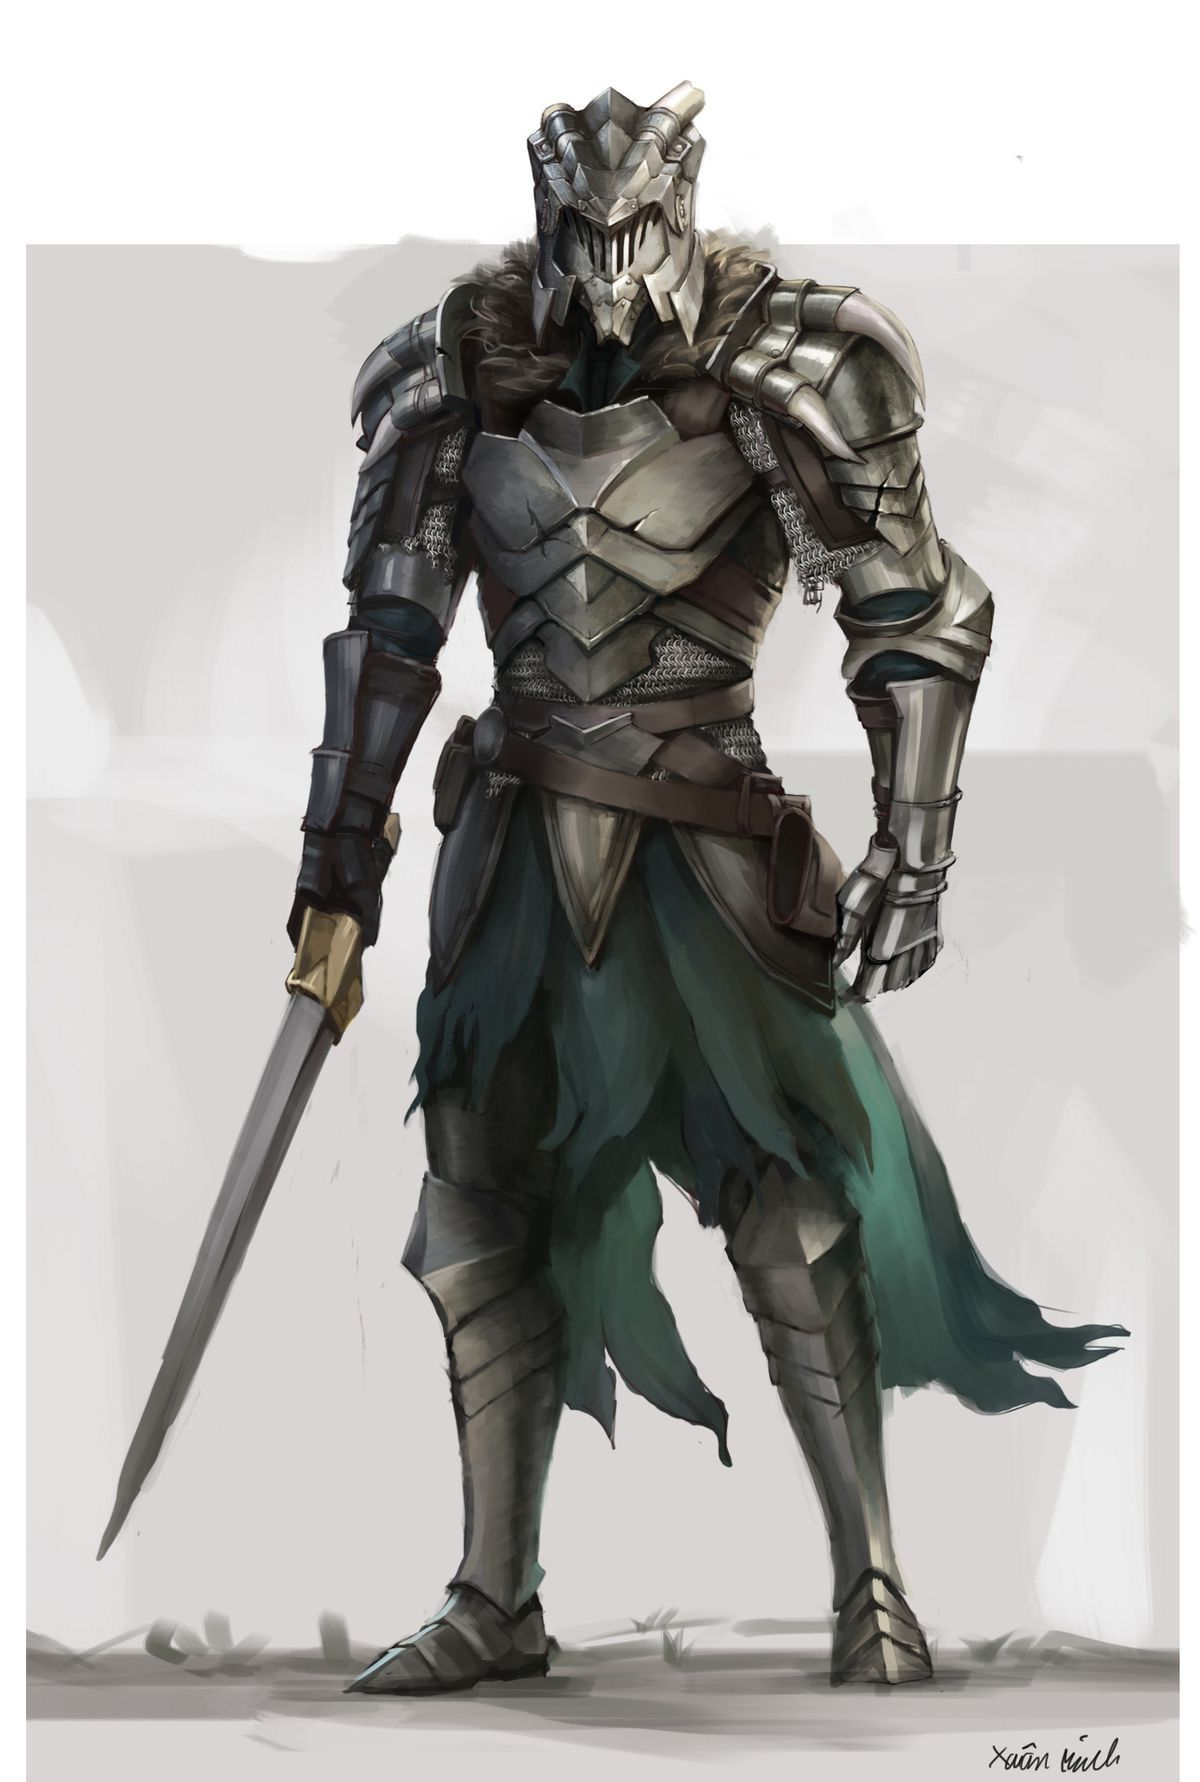 Knight ready for battle with sword in hand while having a ...